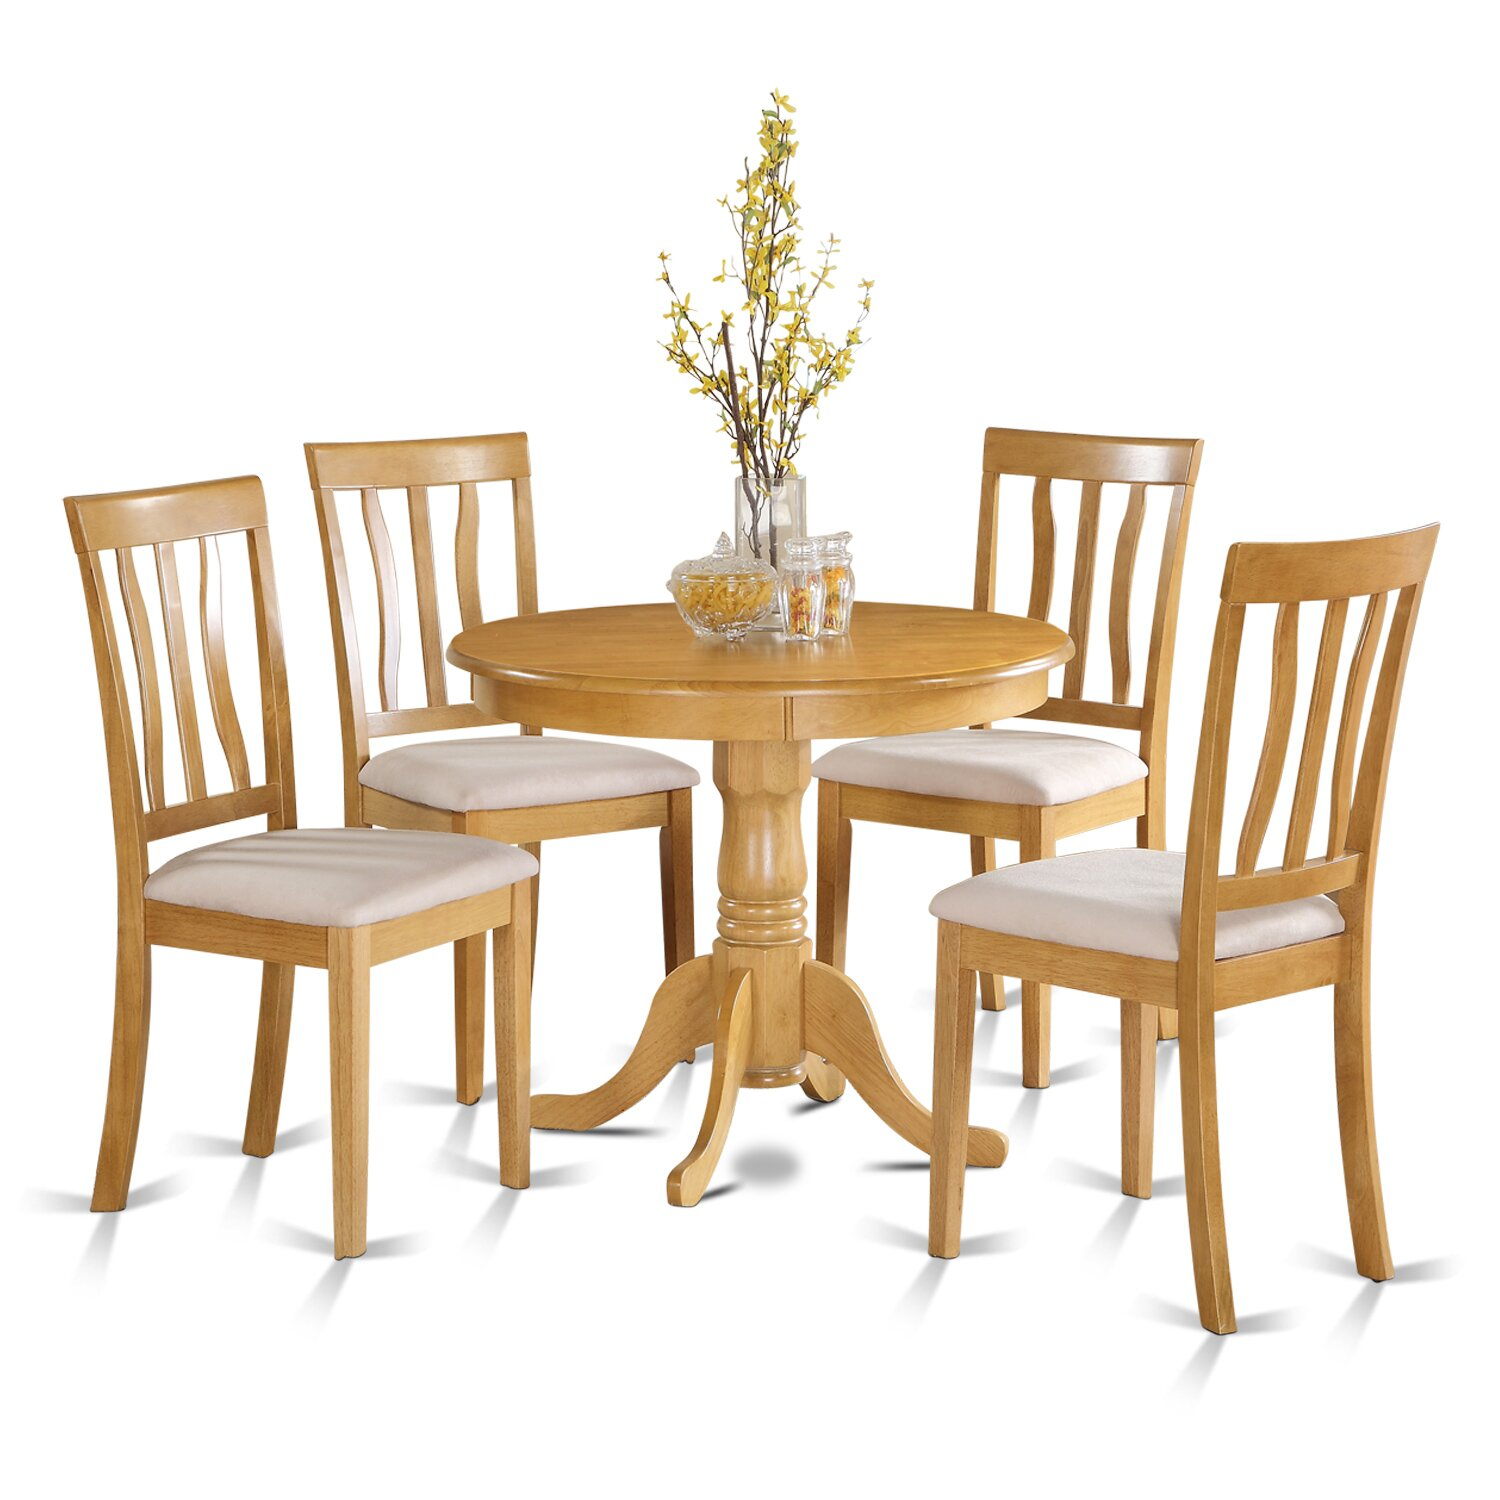 Wooden importers 5 piece dining set reviews wayfair for 5 piece dining room set with bench